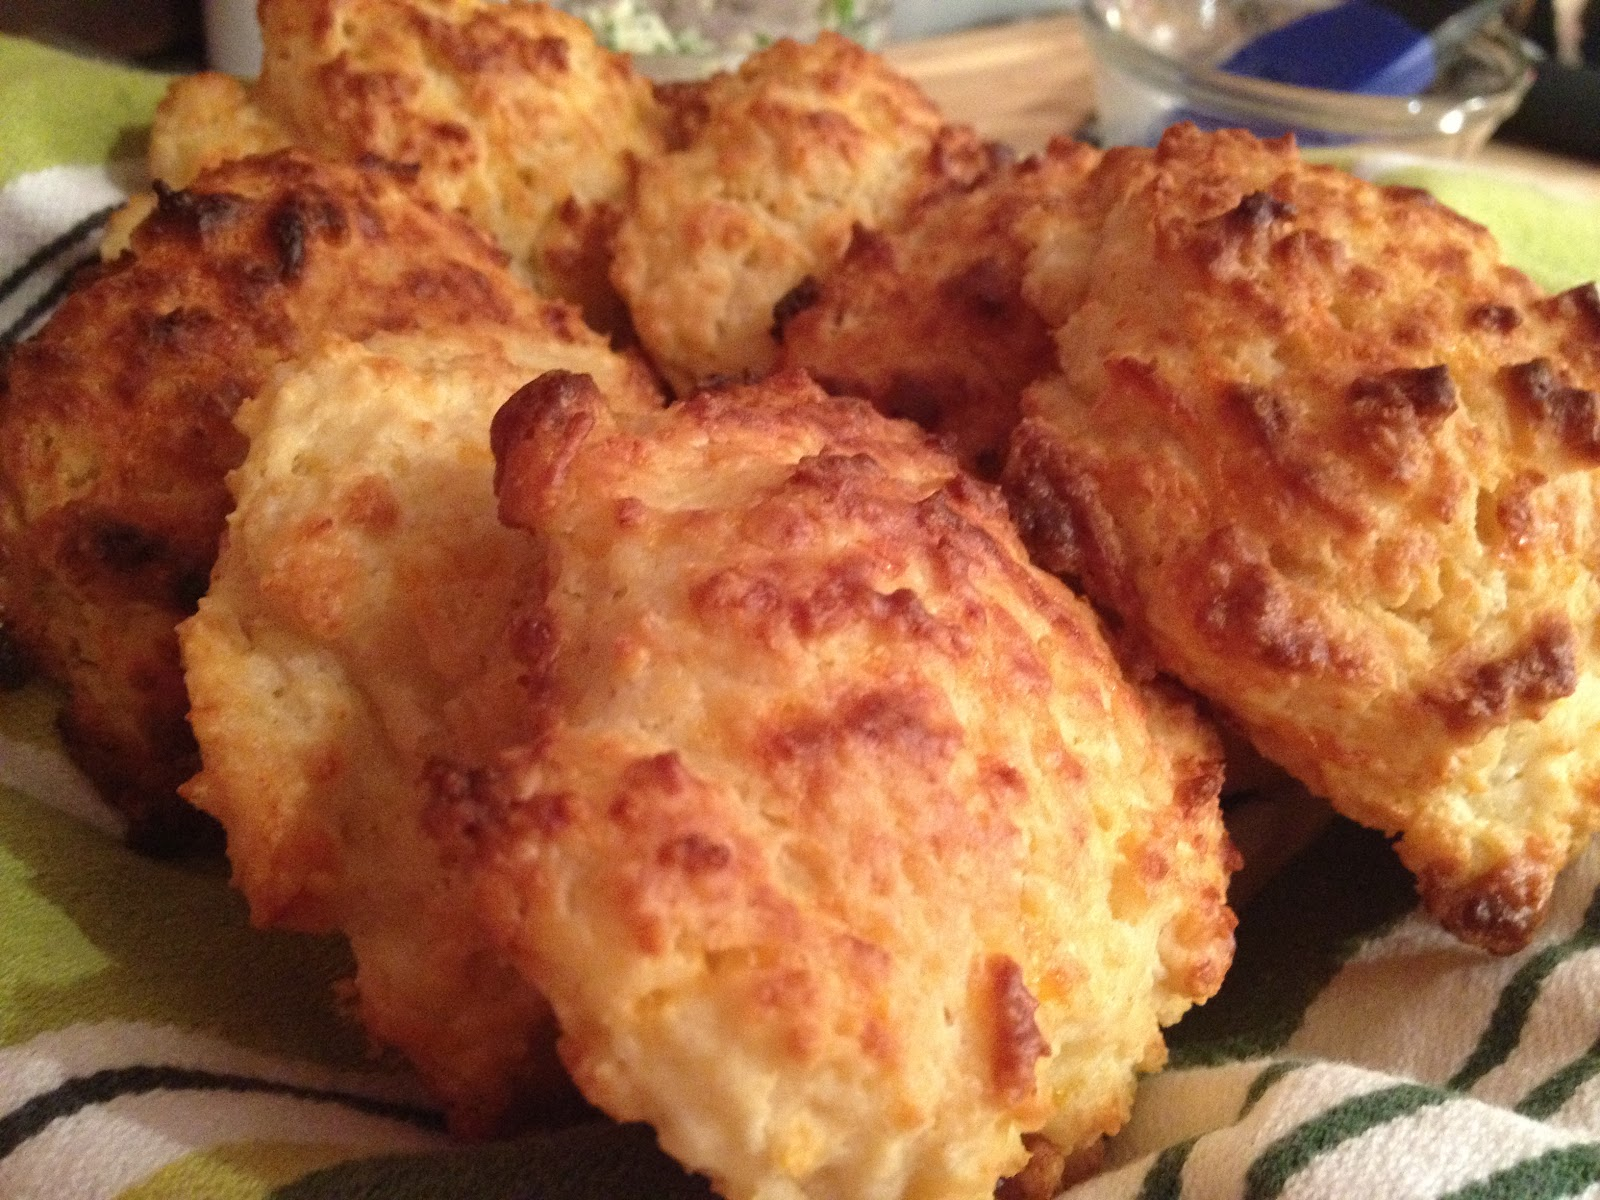 Douglas Kitchen Odyssey: Cheddar Garlic Biscuits with Chive Butter